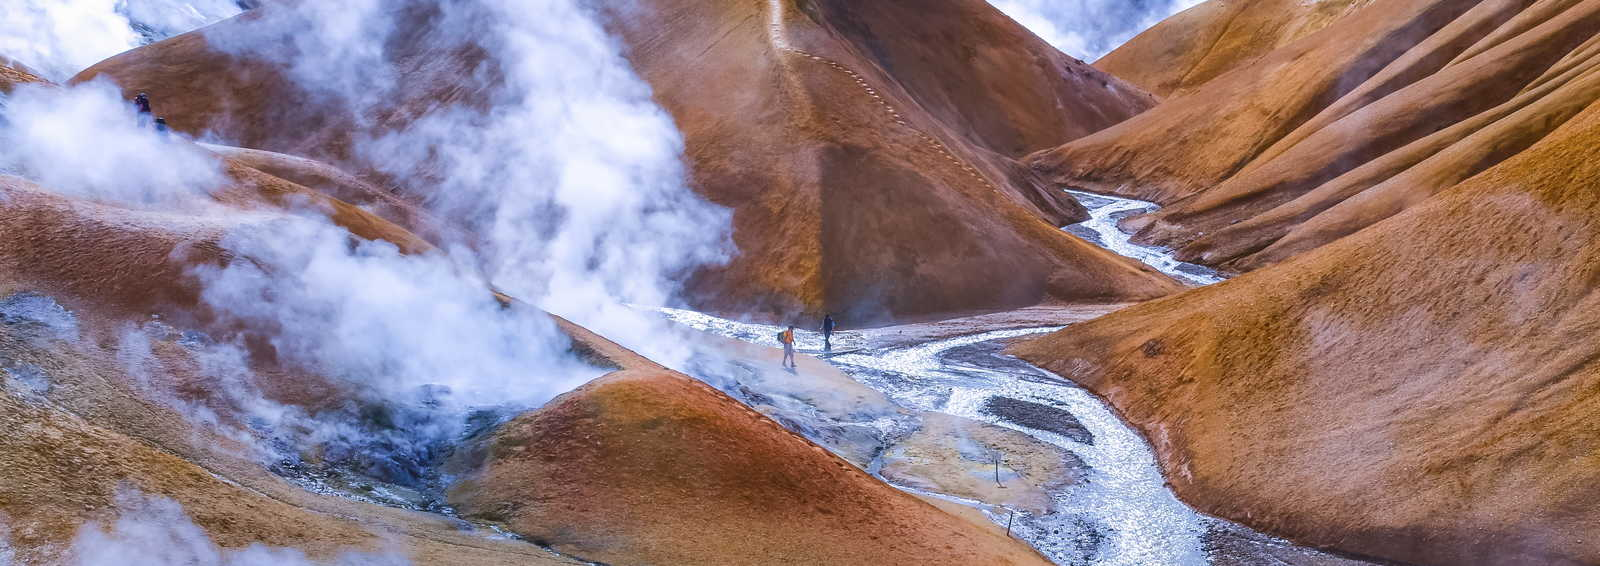 Geothermal smoking field with people, Kerlingafjoll, Iceland